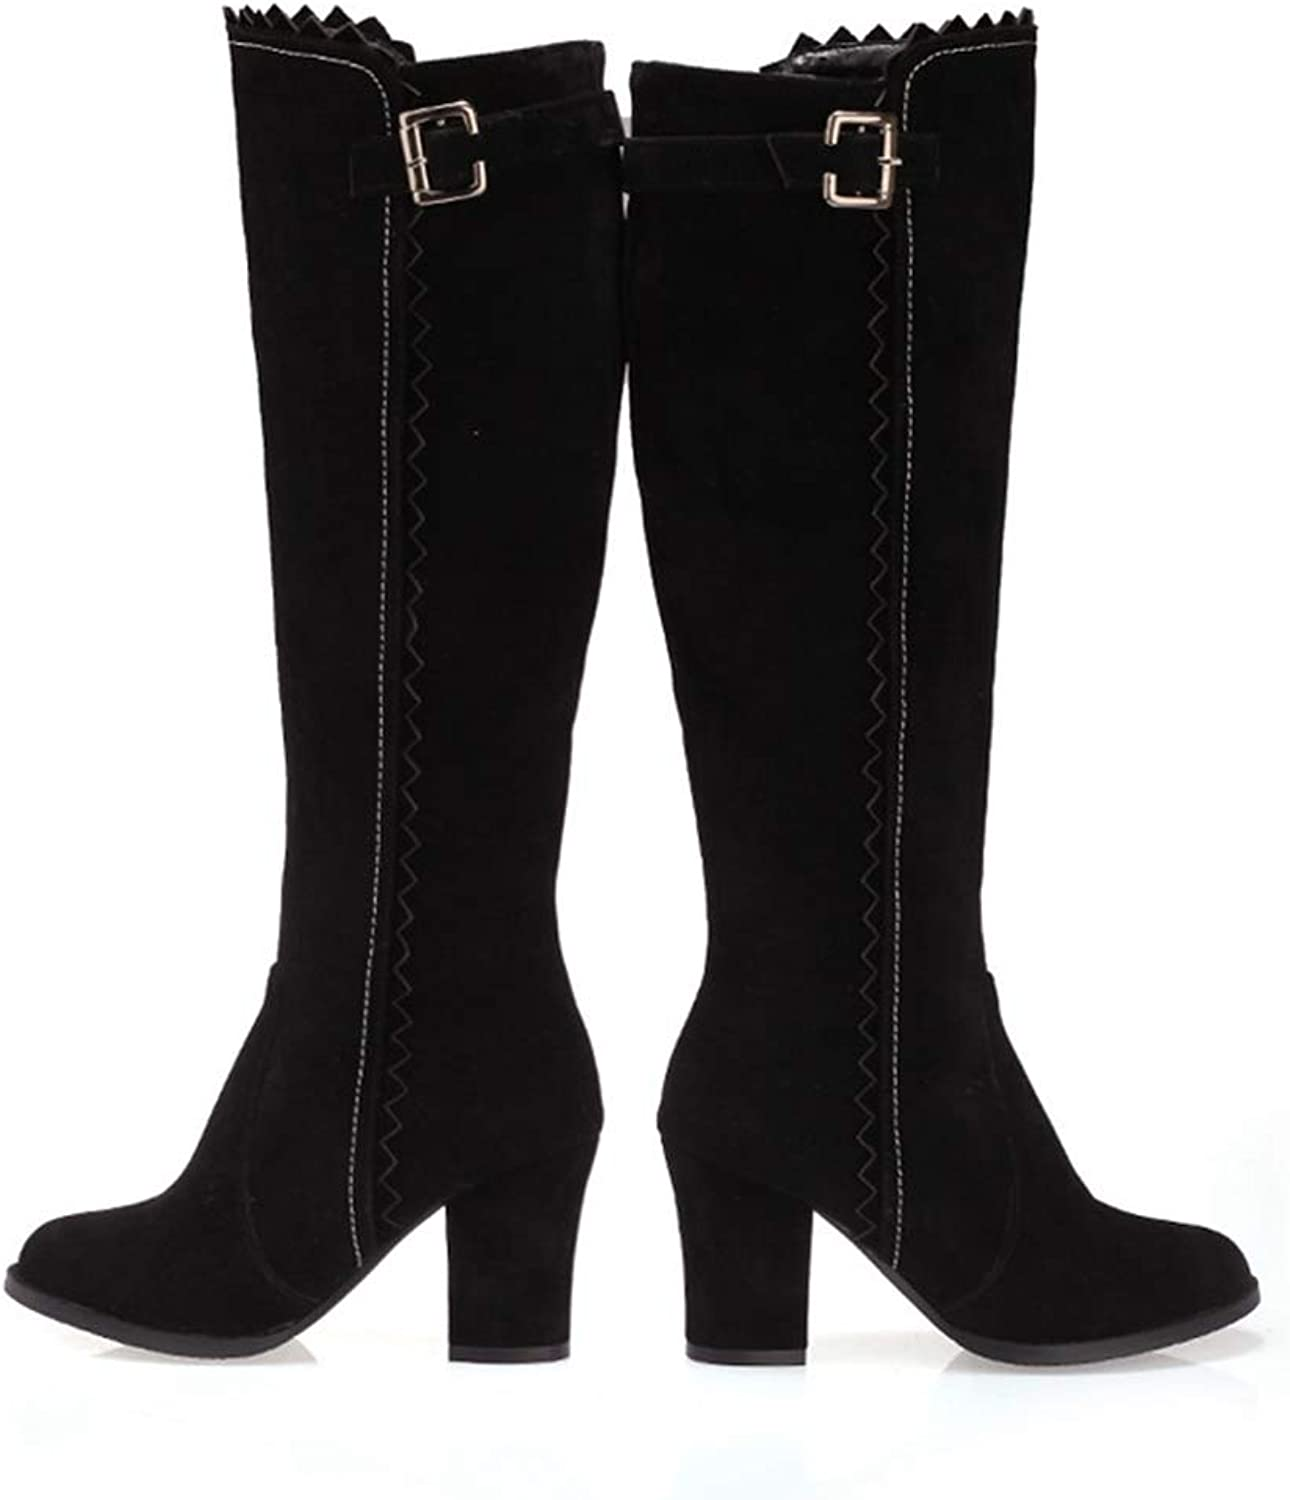 Hoxekle Winter Boots Buckle Zipper shoes Women Boots Fashion Square Heel Round Toe Boot